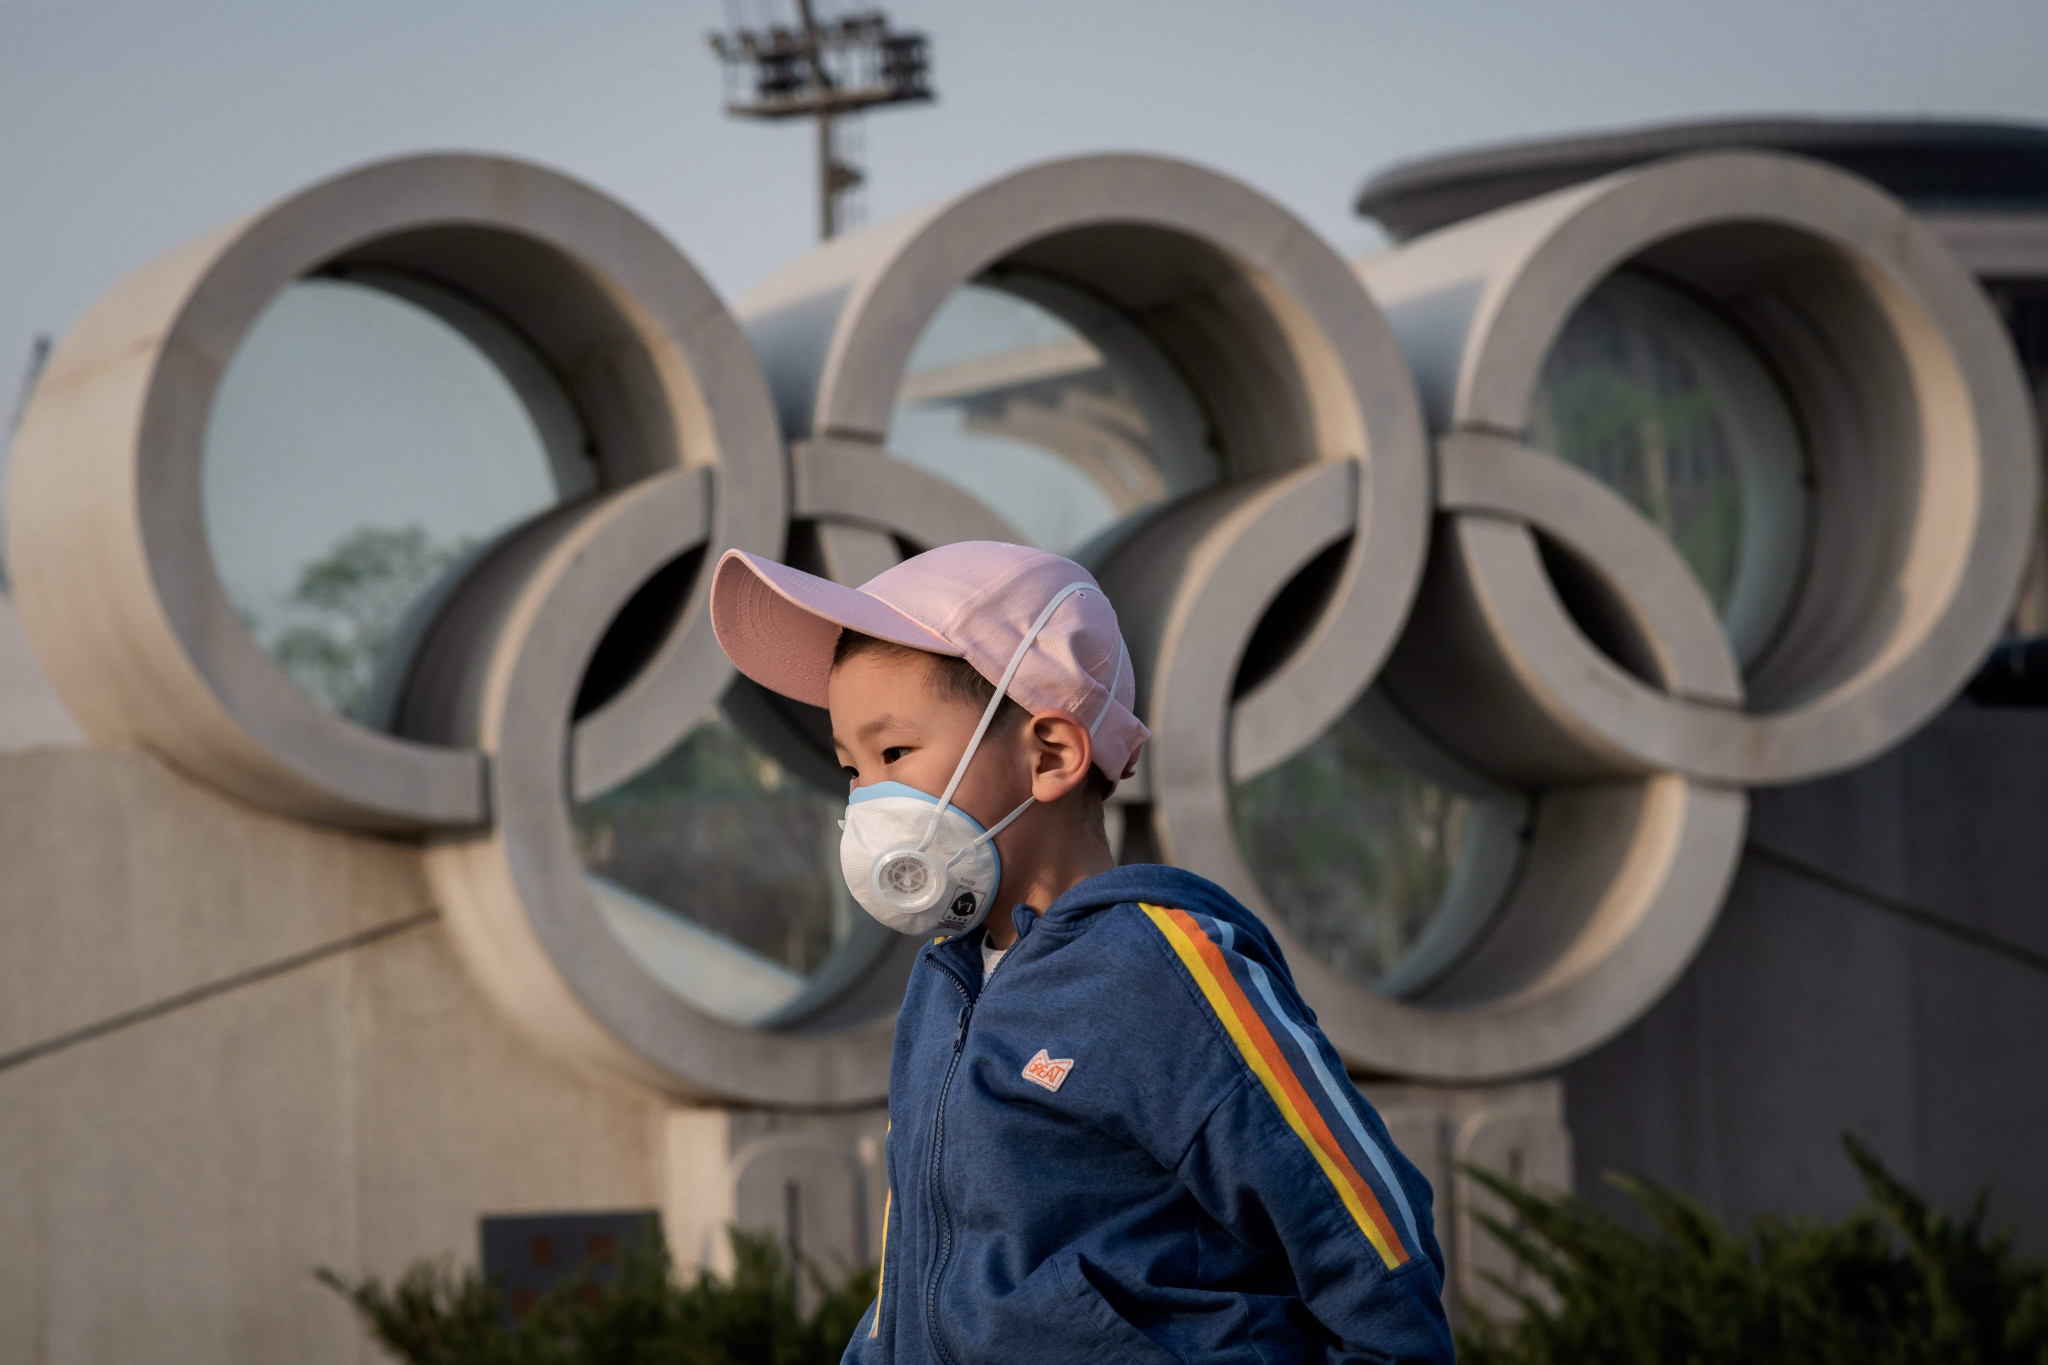 There has been mounting pressure to postpone the Tokyo 2020 Olympic and Paralympic Games due to the coronavirus crisis ©Getty Images